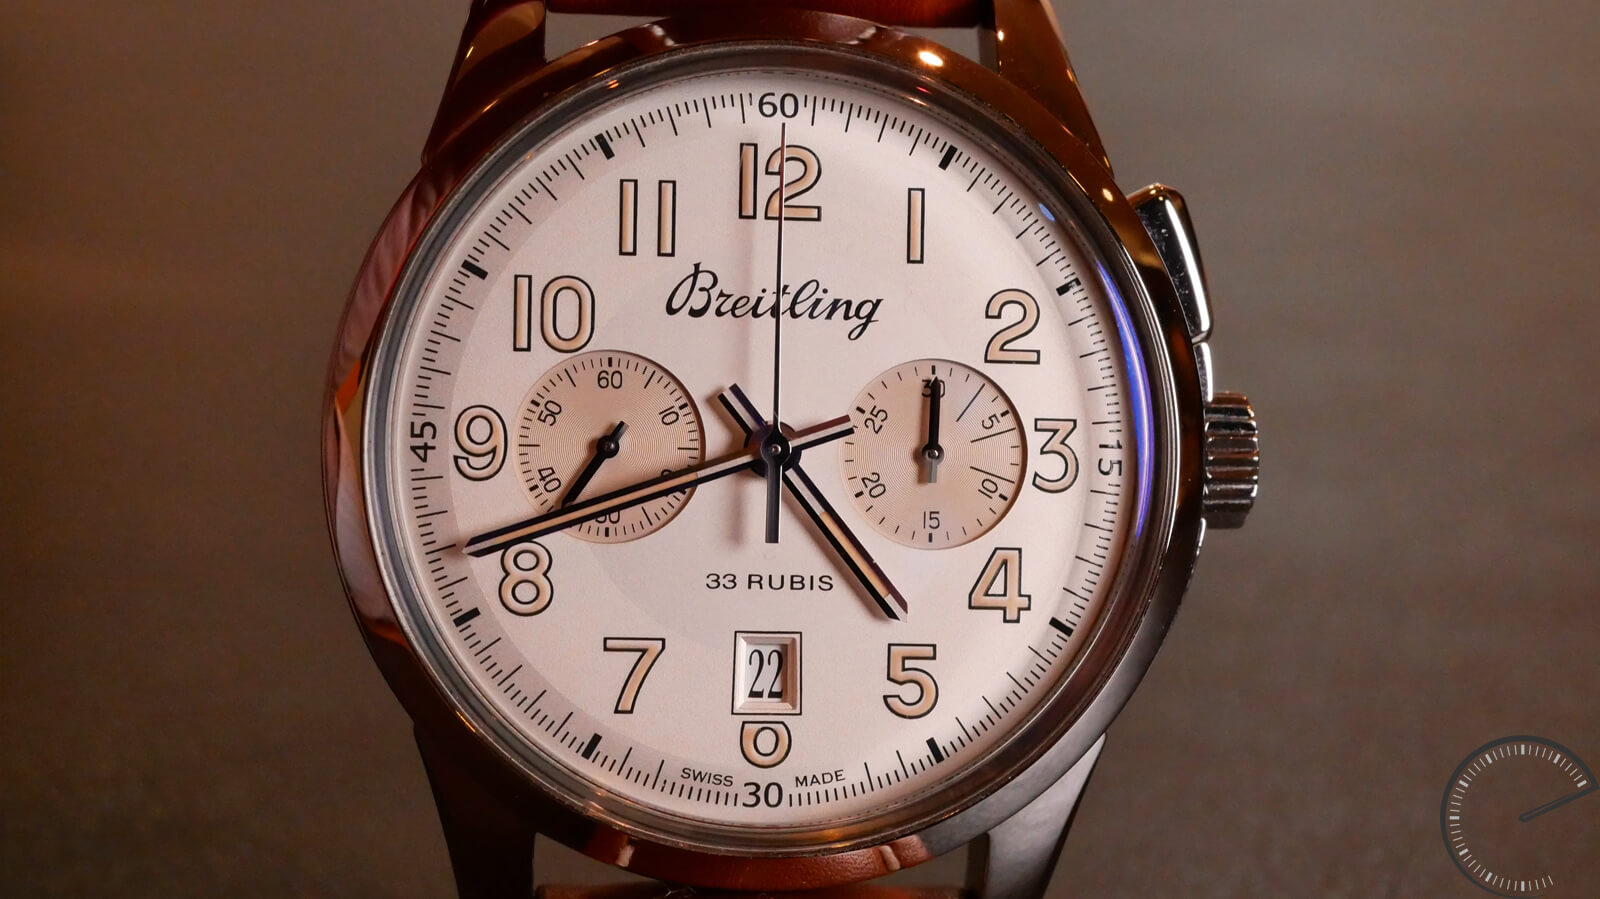 Breitling Transocean Chronograph 1915 - monopusher chronograph with double column-wheel